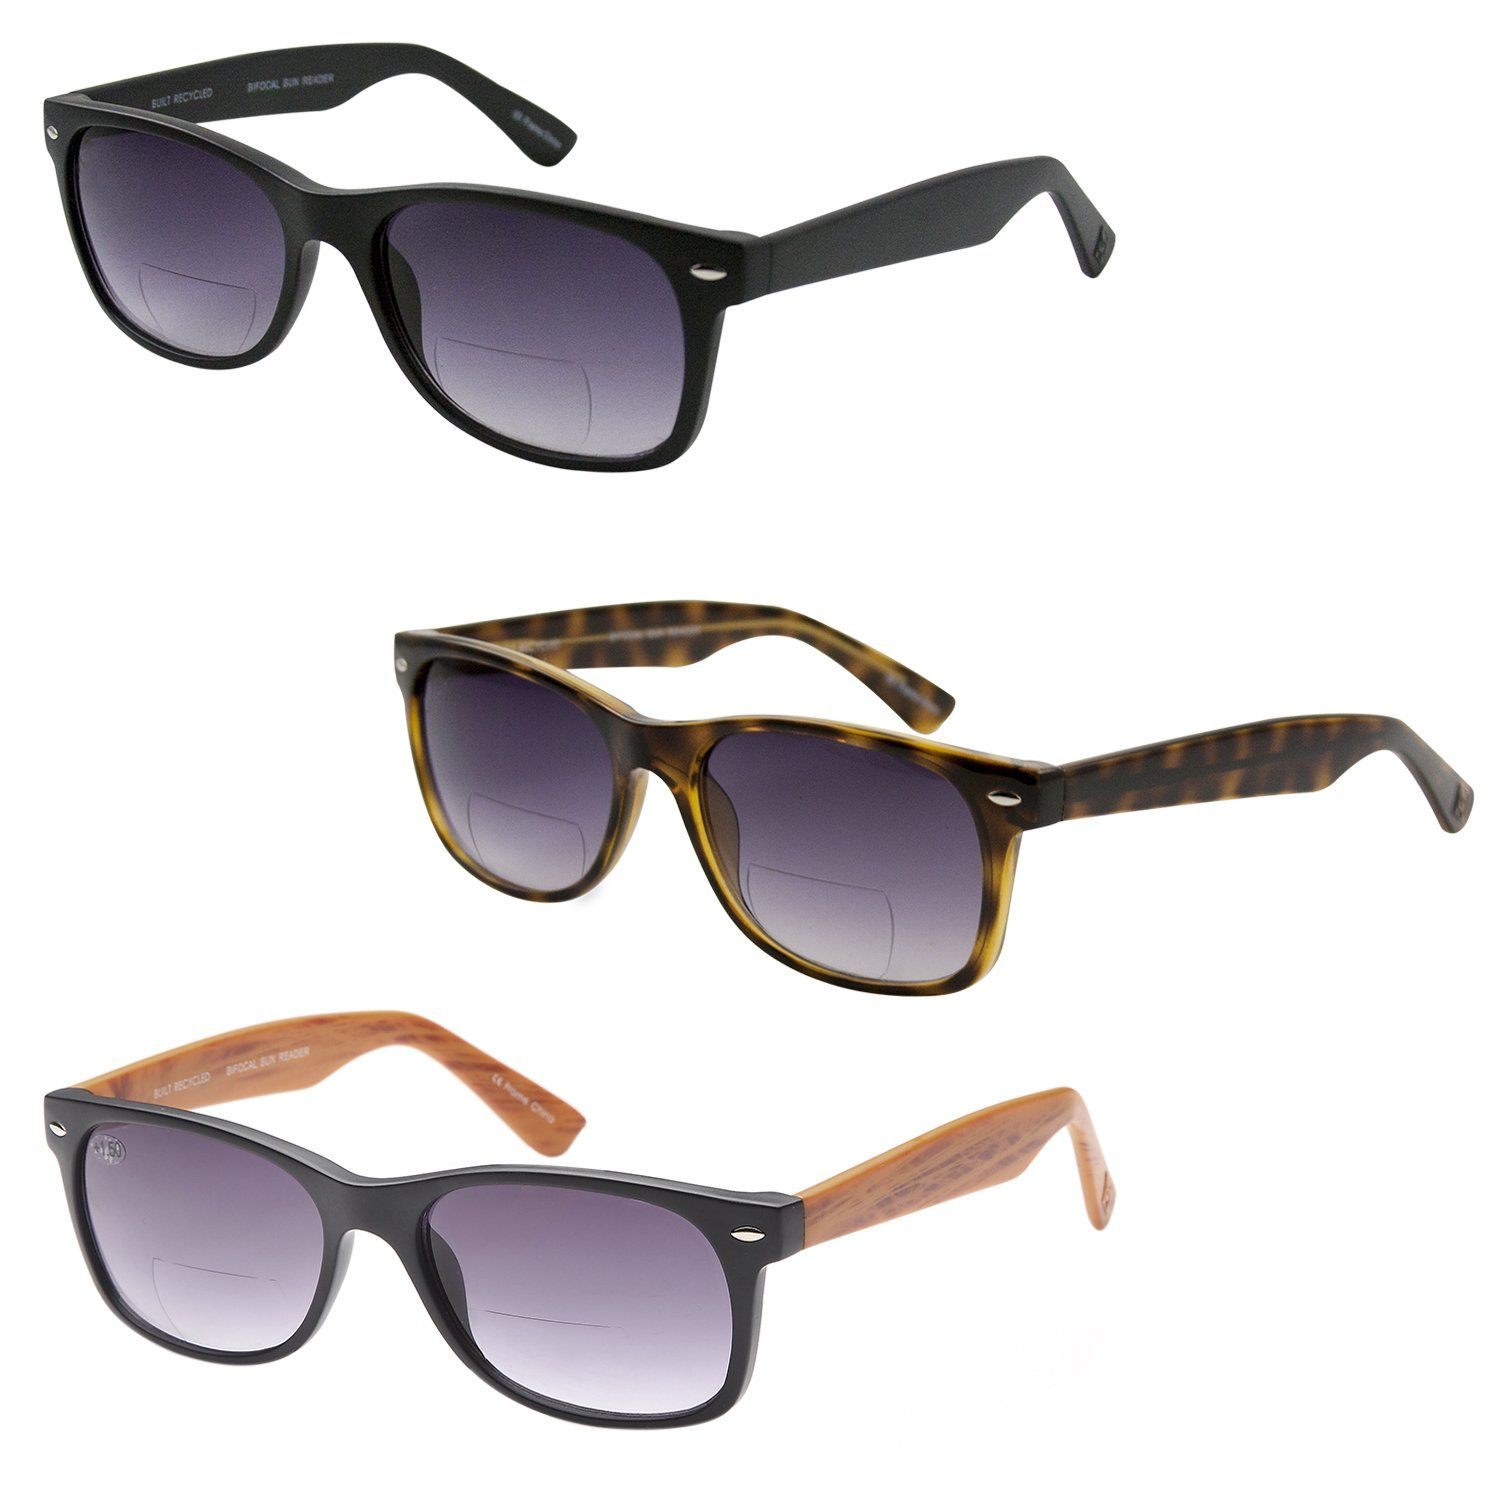 dd28a671268 GAMMA RAY 3 Pack of Vintage Style Bifocal Sunglasses 2.00 Magnification  Readers w Gradient Lens UV400 Protection Outdoor Reading Glasses for Men  and Women ...